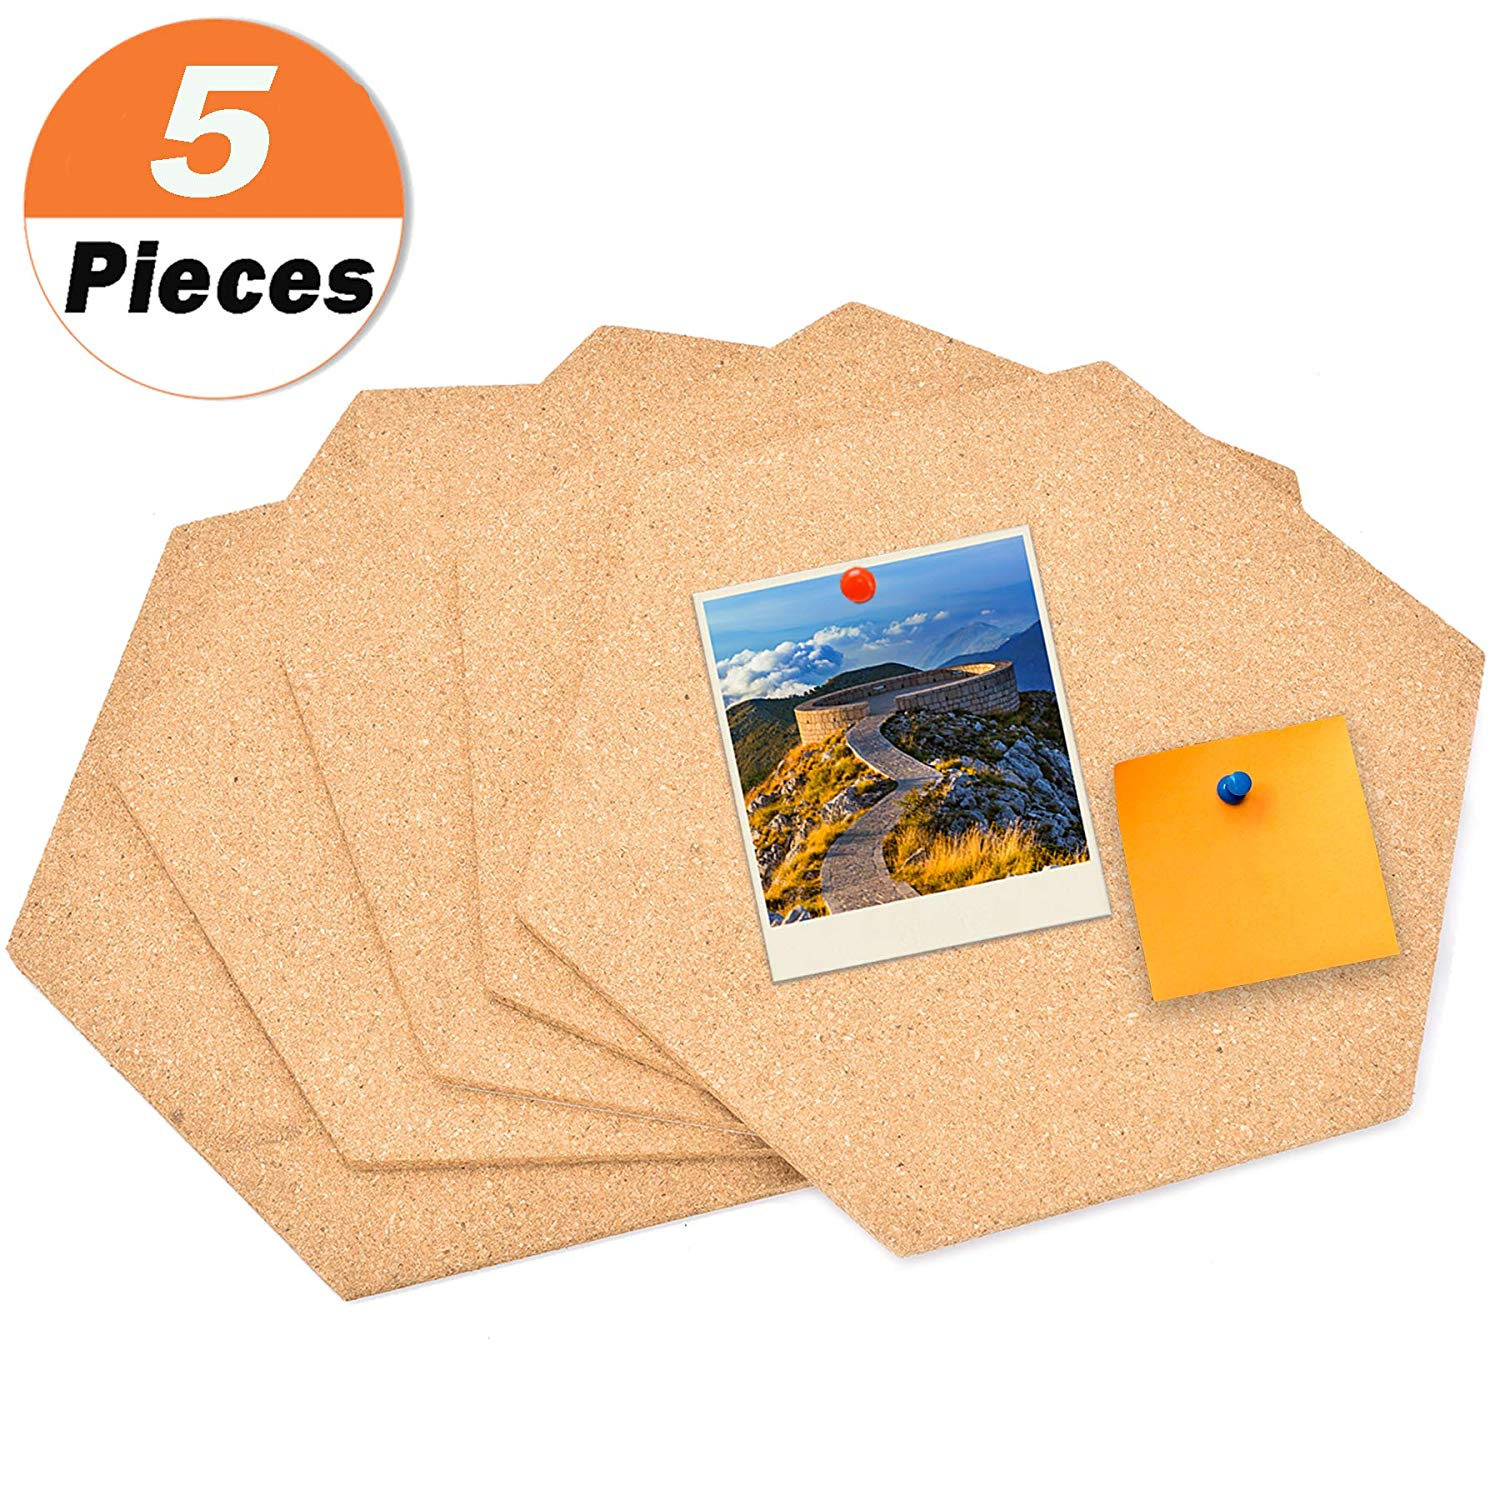 """5 Pack Hexagon Cork Board Tiles with Adhesive 11.8 by 10.2"""" - Buytra Mini Wall Bulletin Boards, Pin Board Decoration for Photos, Pictures, Sticky Notes, Drawing"""